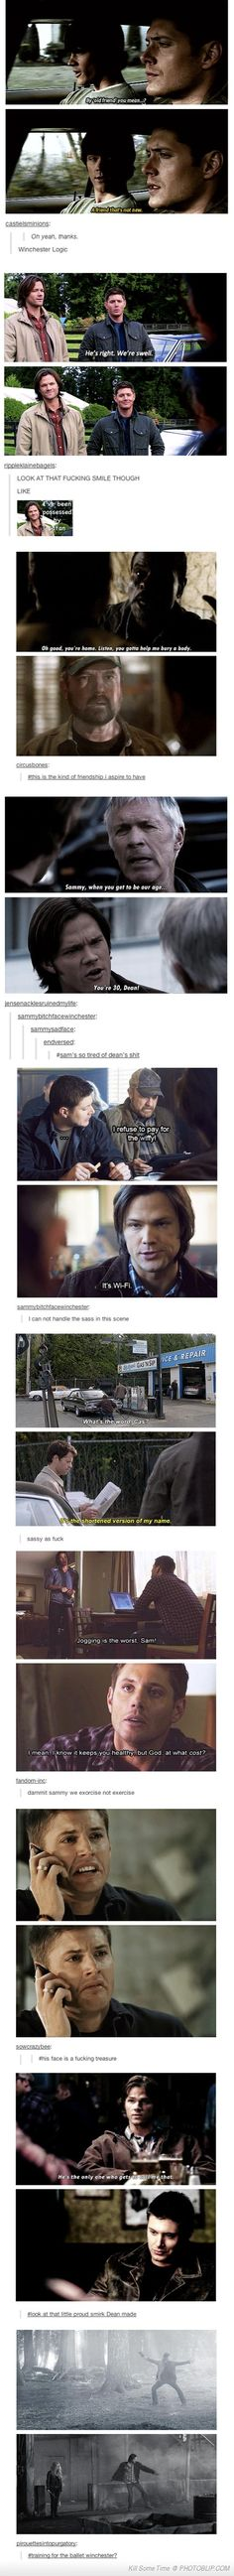 supernatural tumblr posts | My Favorite Supernatural Tumblr Posts if you didn't read the last comment in Draco's voice, you're wrong.